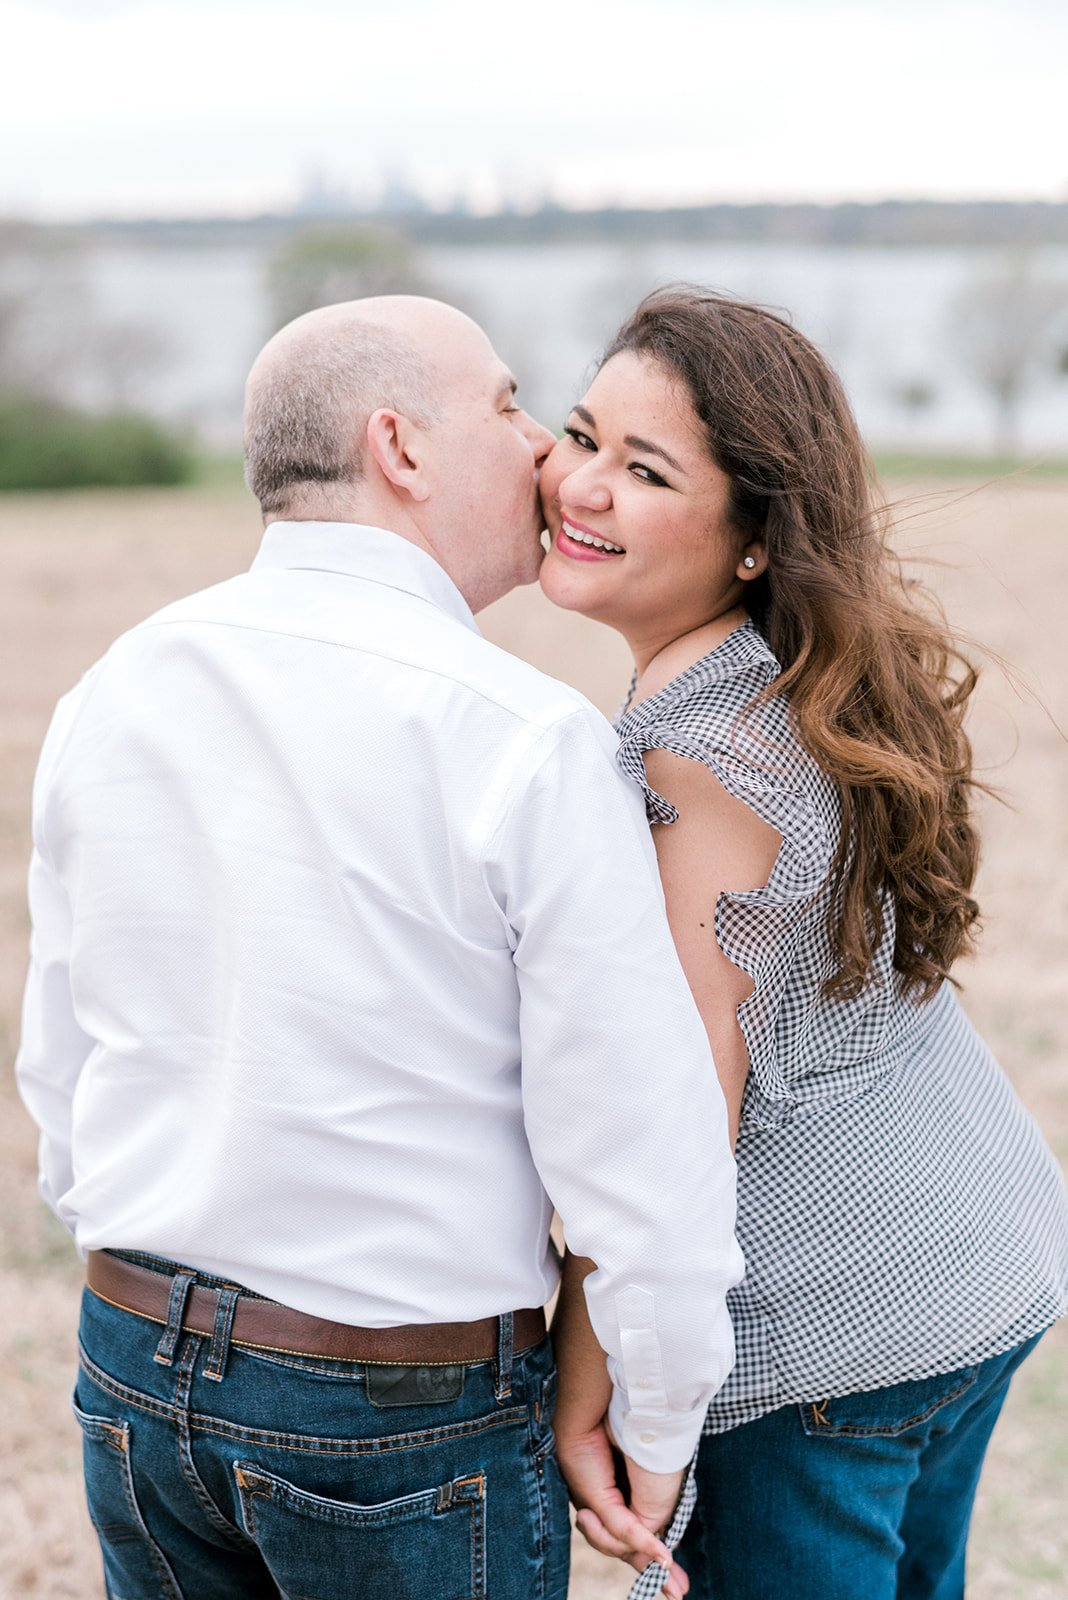 Outdoor engagement session - texas proposal - airy photography - bright proposal session - catie ann photography - dallas, texas